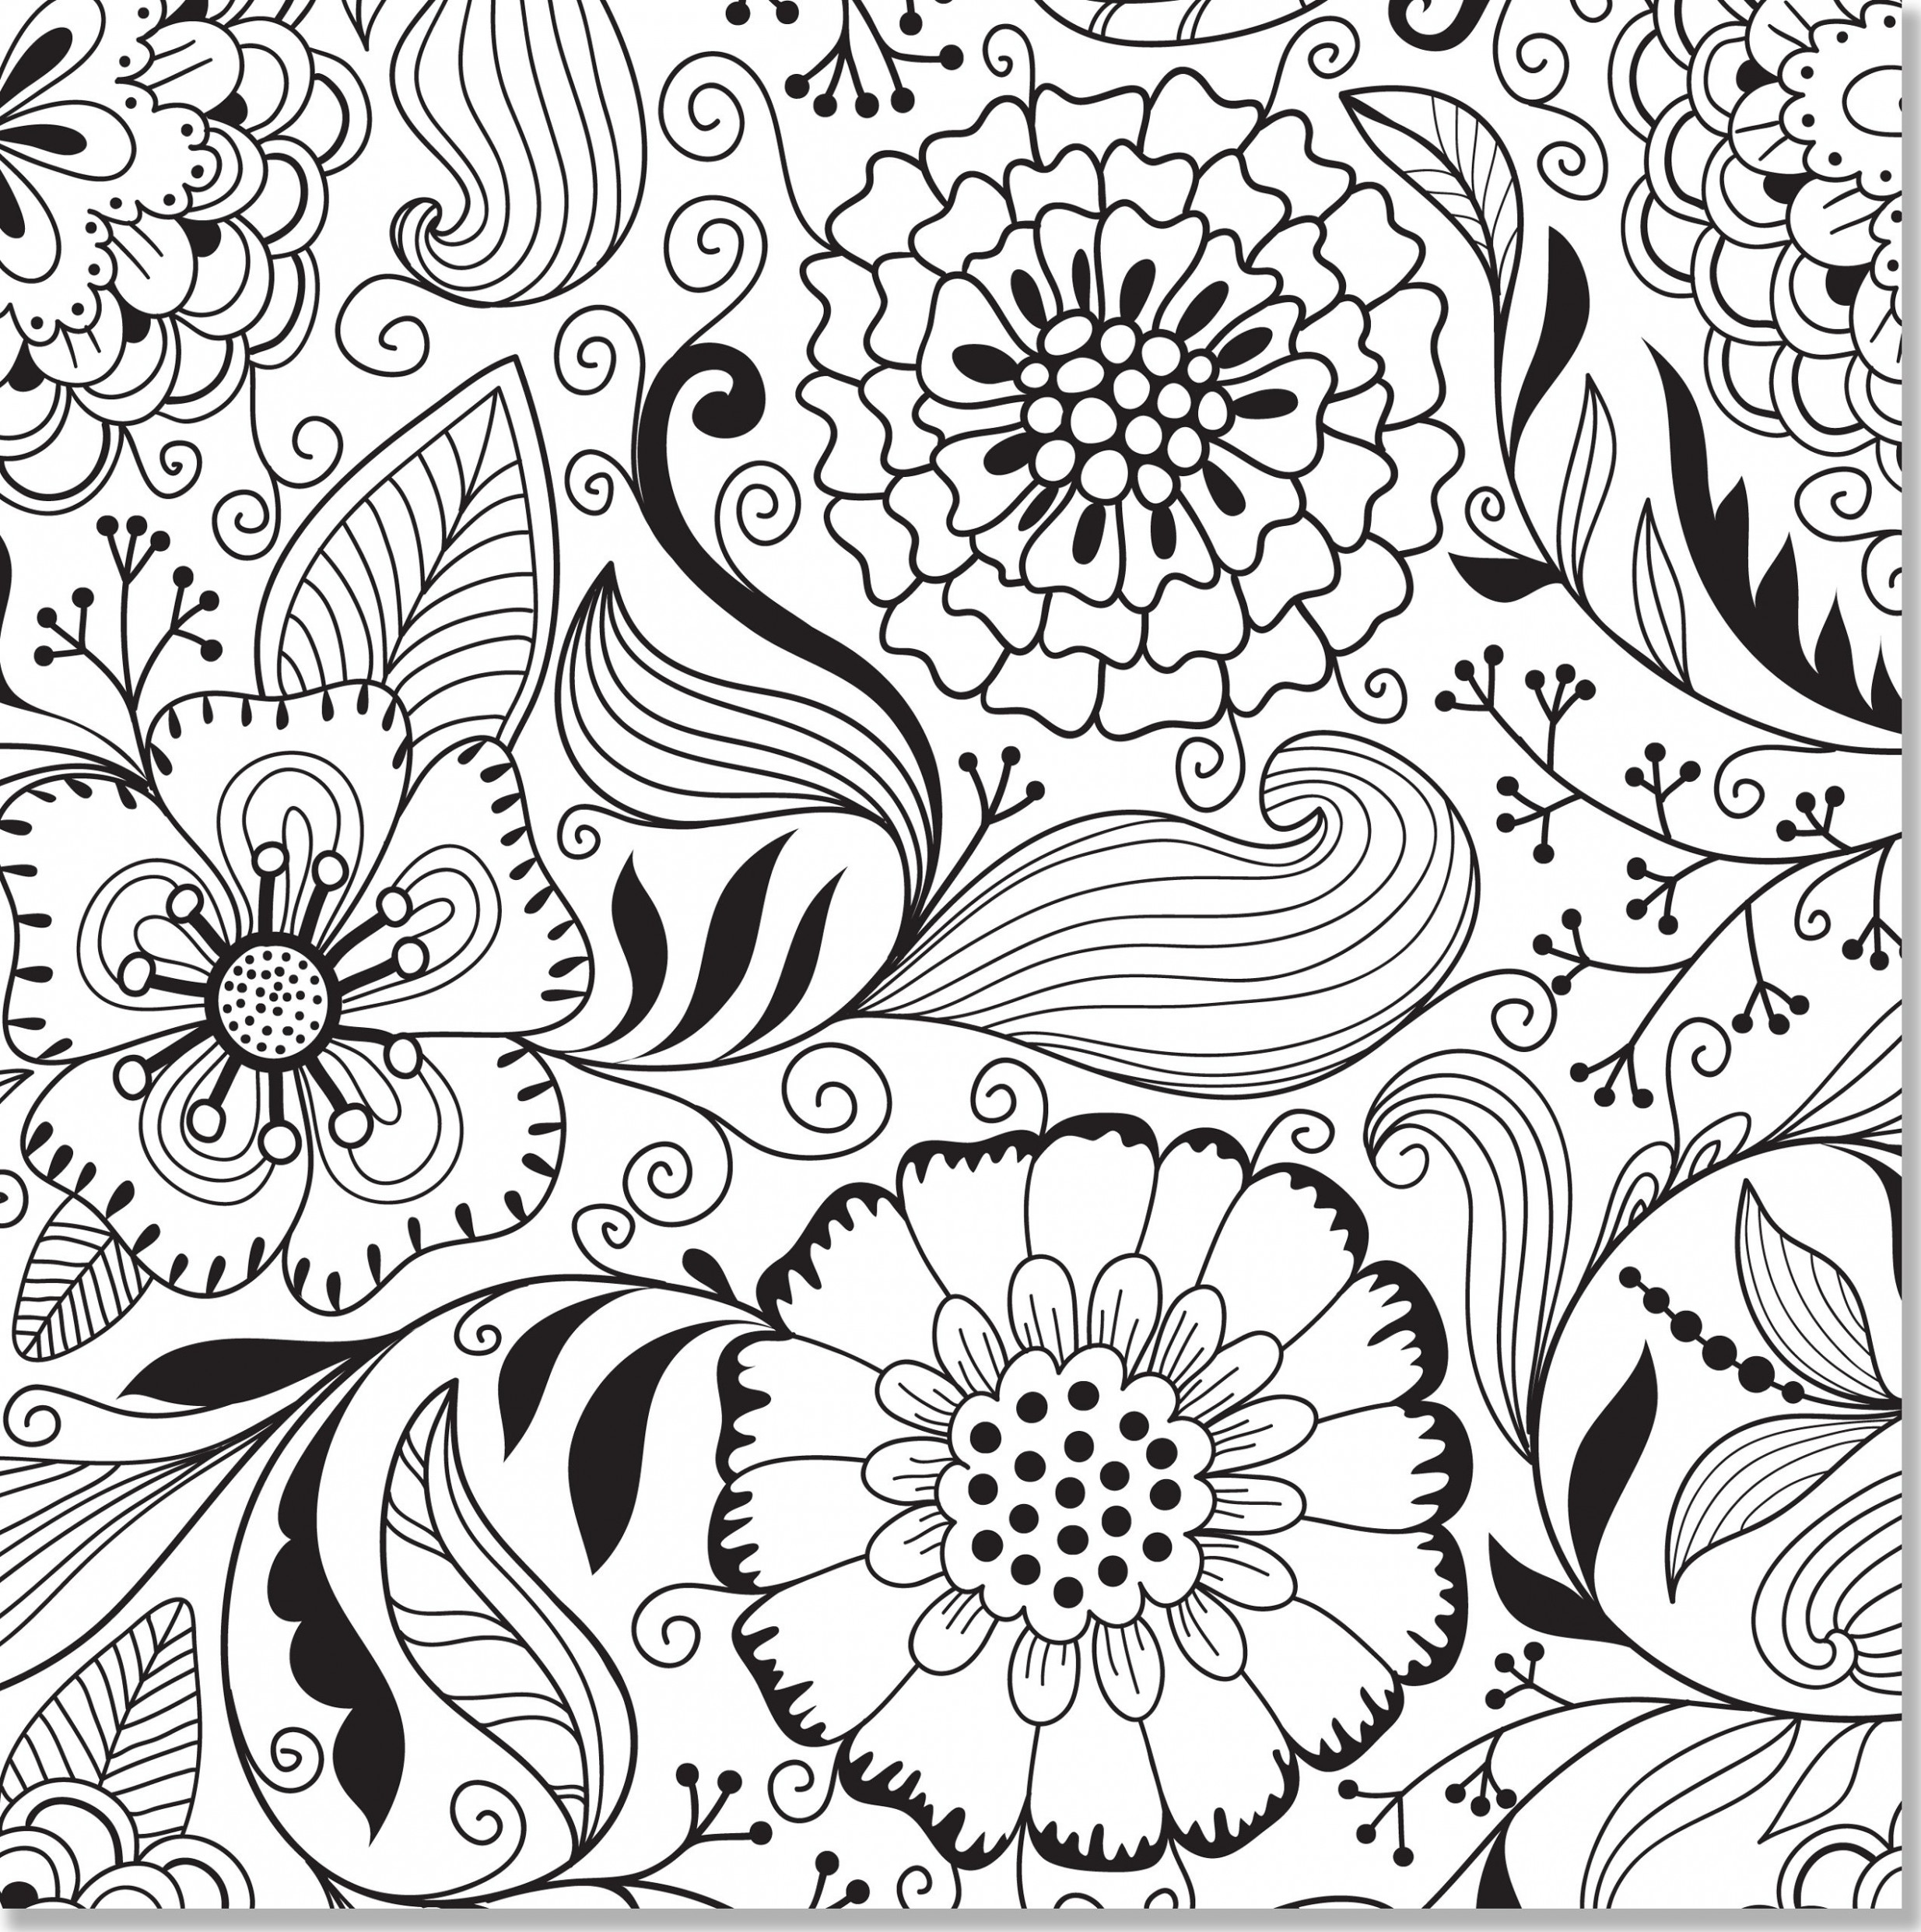 Amazon.com: Floral Designs Adult Coloring Book (18 stress-relieving ..